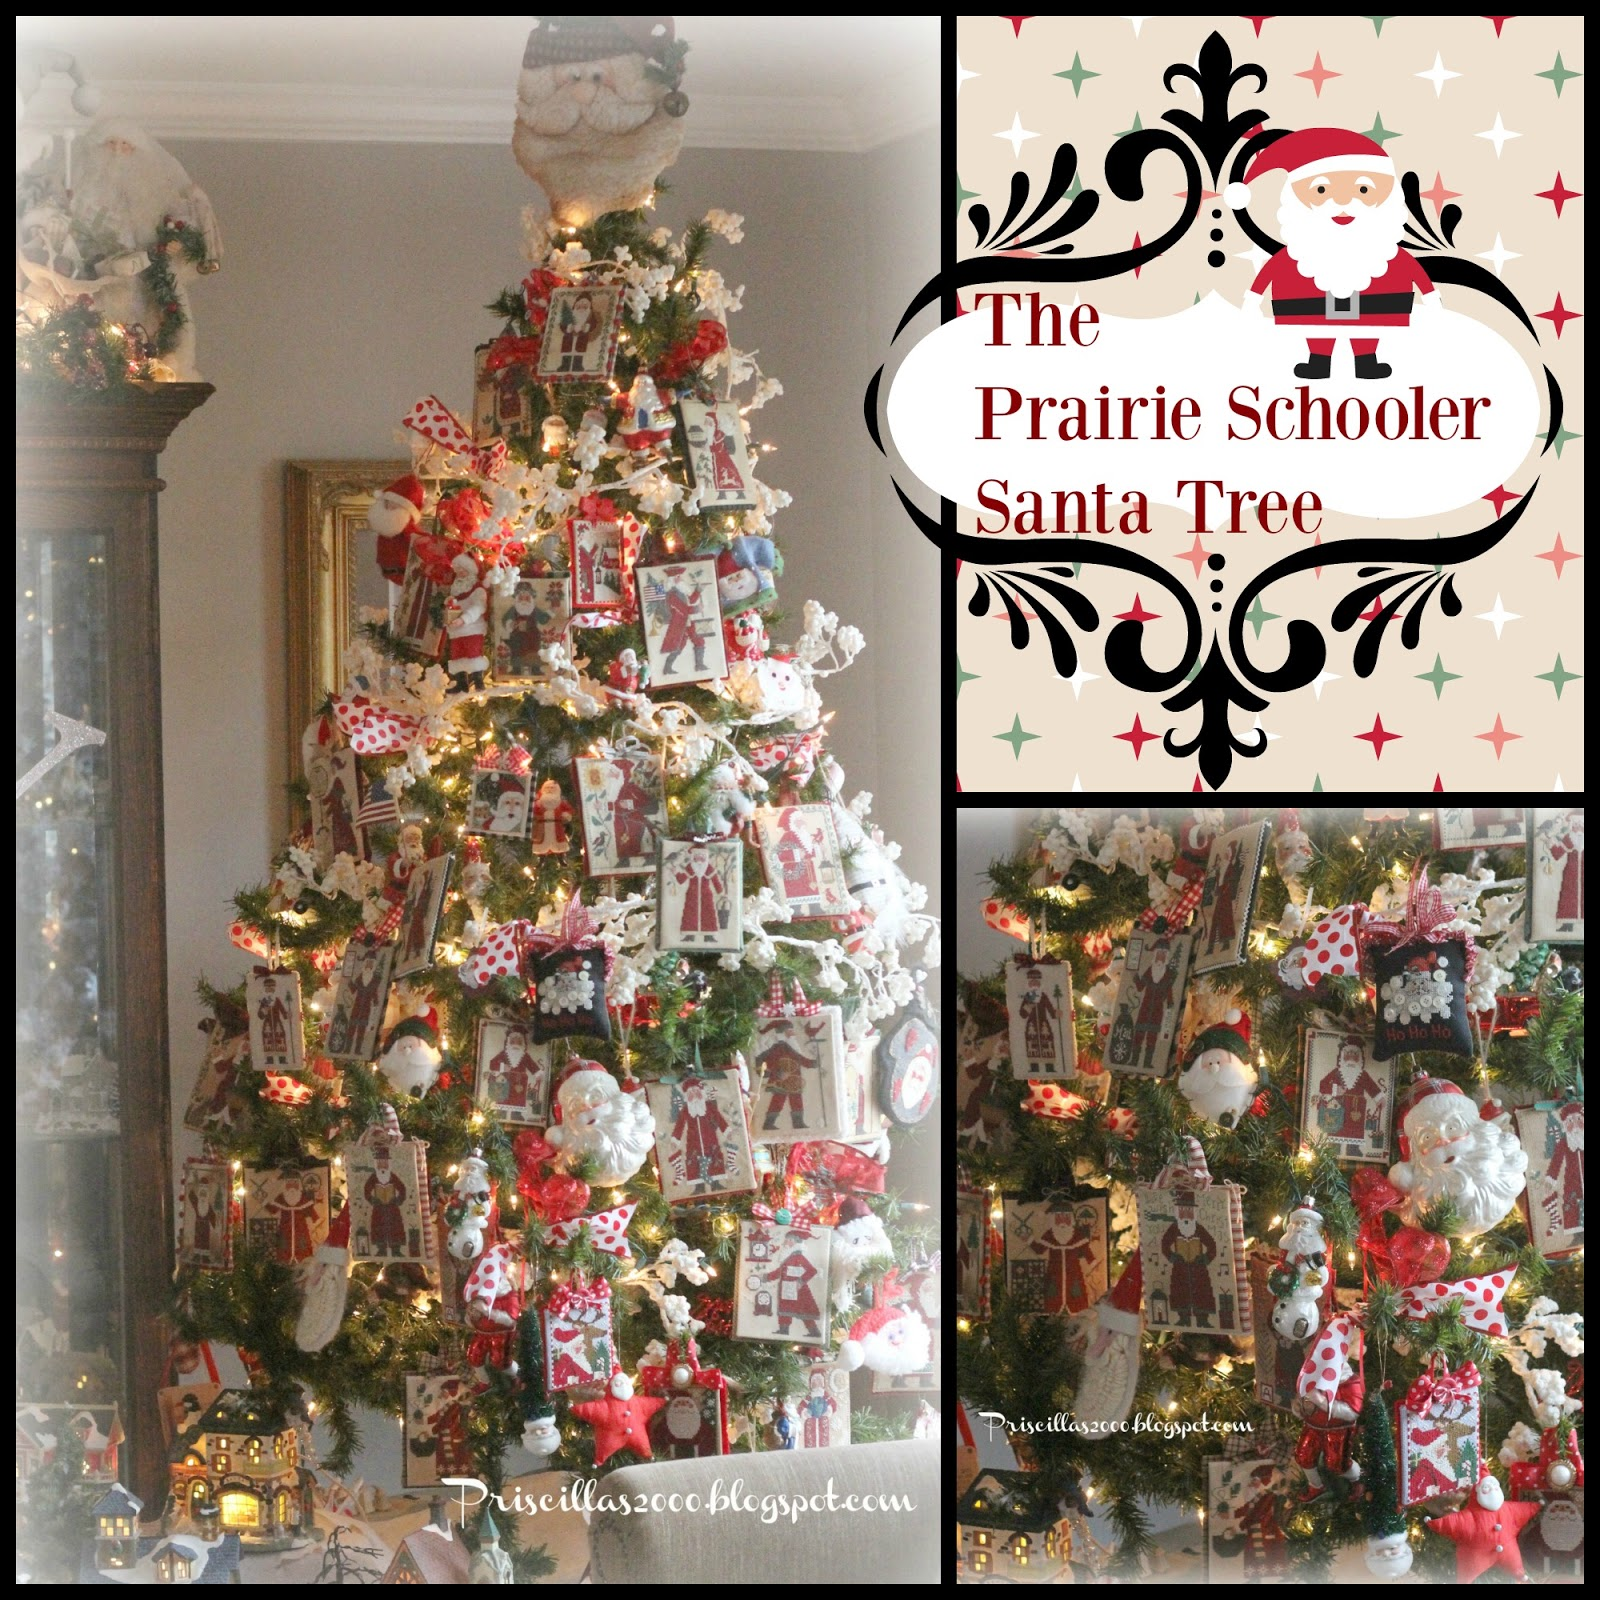 the prairie schooler santa tree - Santa Trees